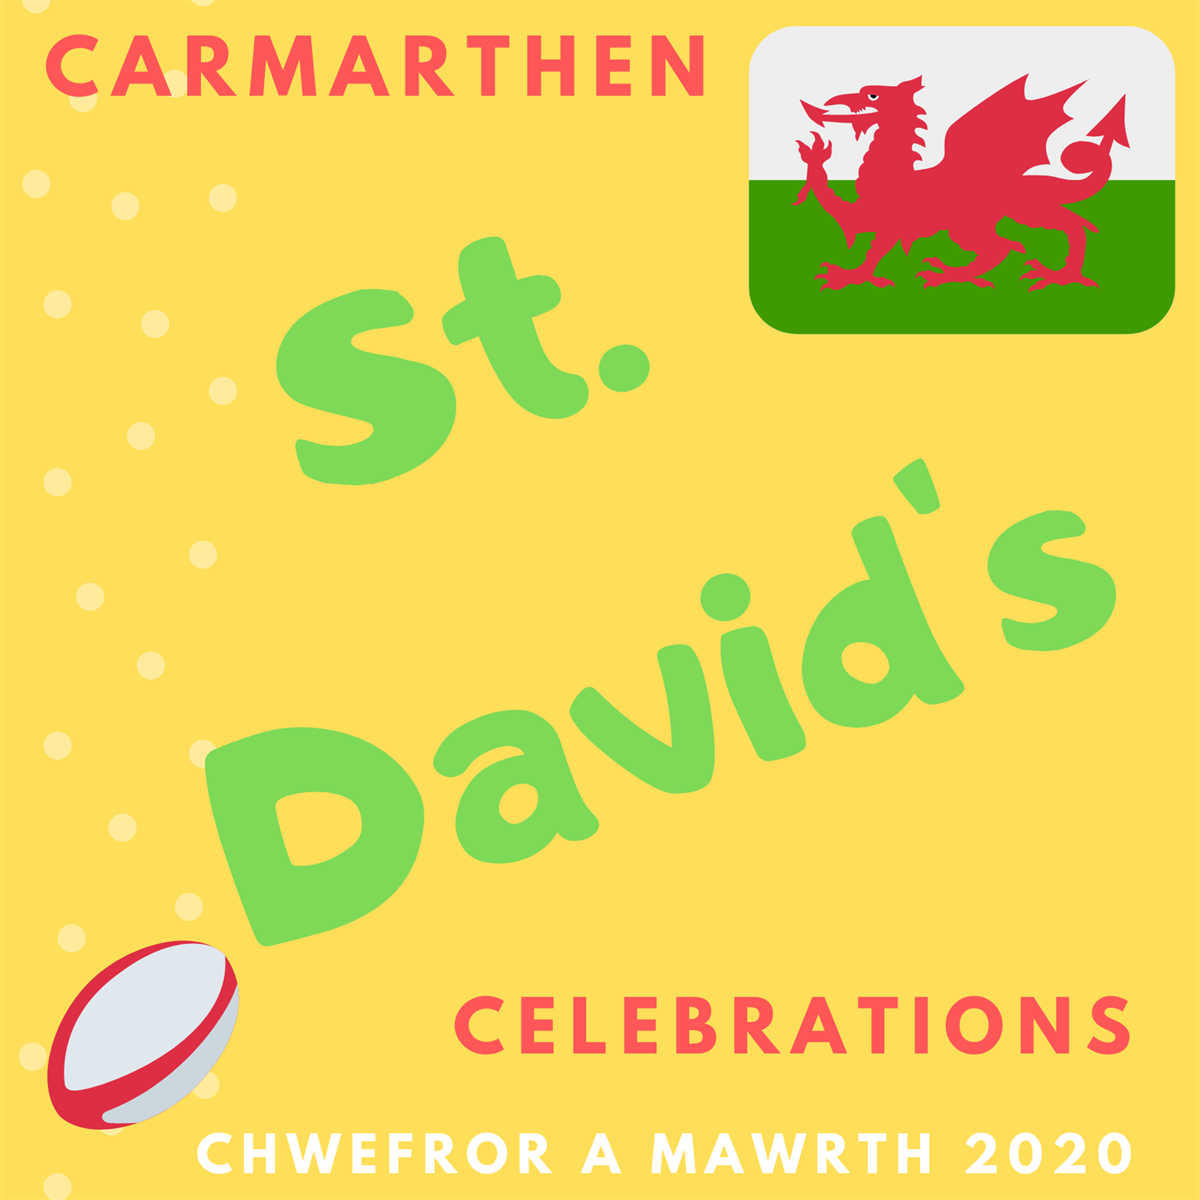 Carmarthen St Davids Celebrartion 2020 poster